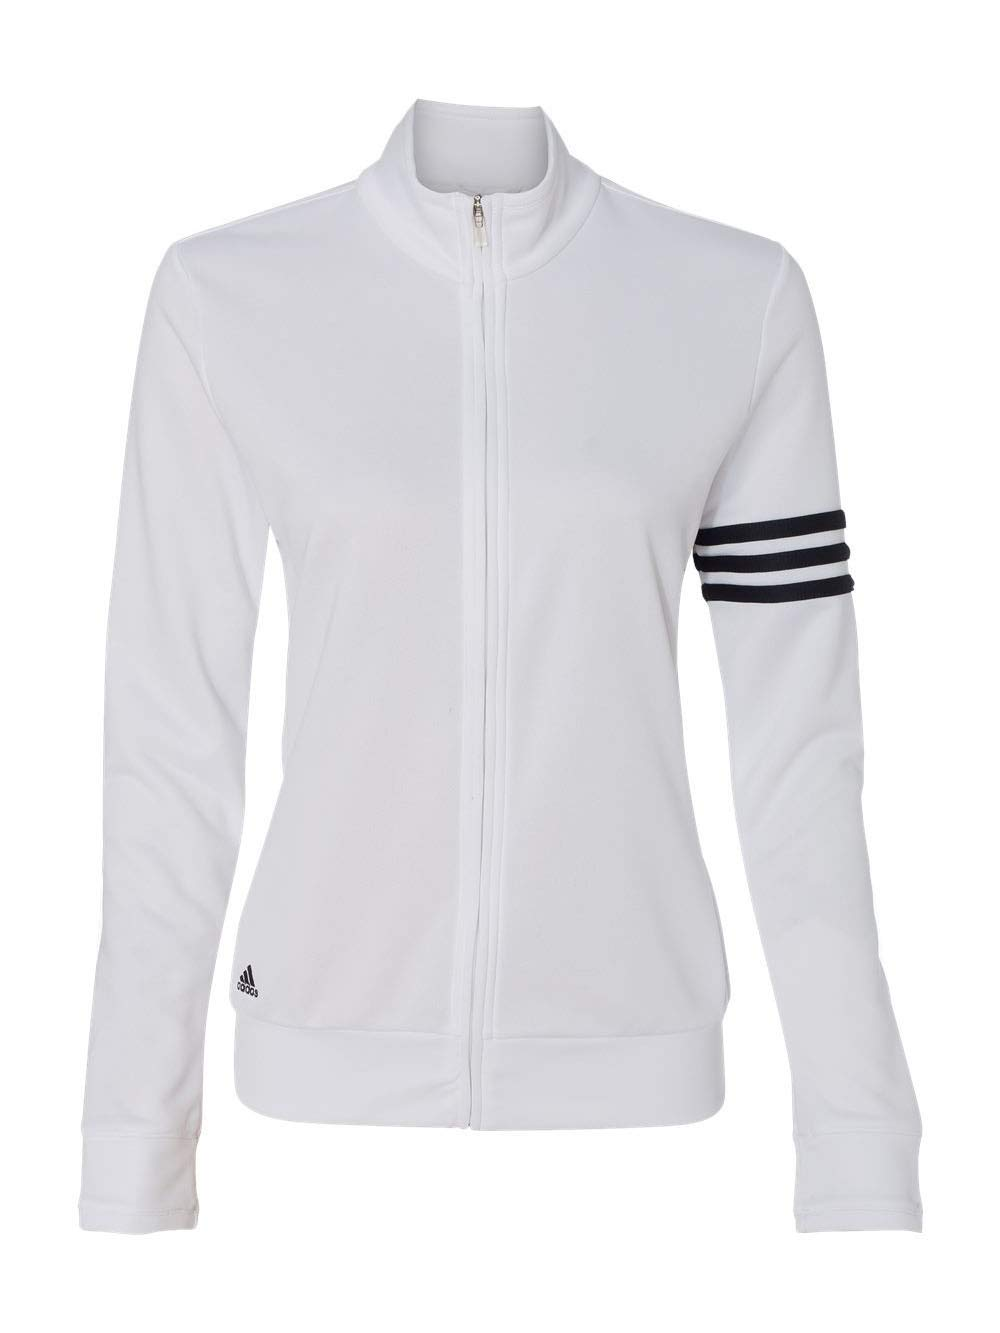 adidas A191 Ladies ClimaLite 3-Stripes Full Zip Pullover Jacket - White & Black, Large